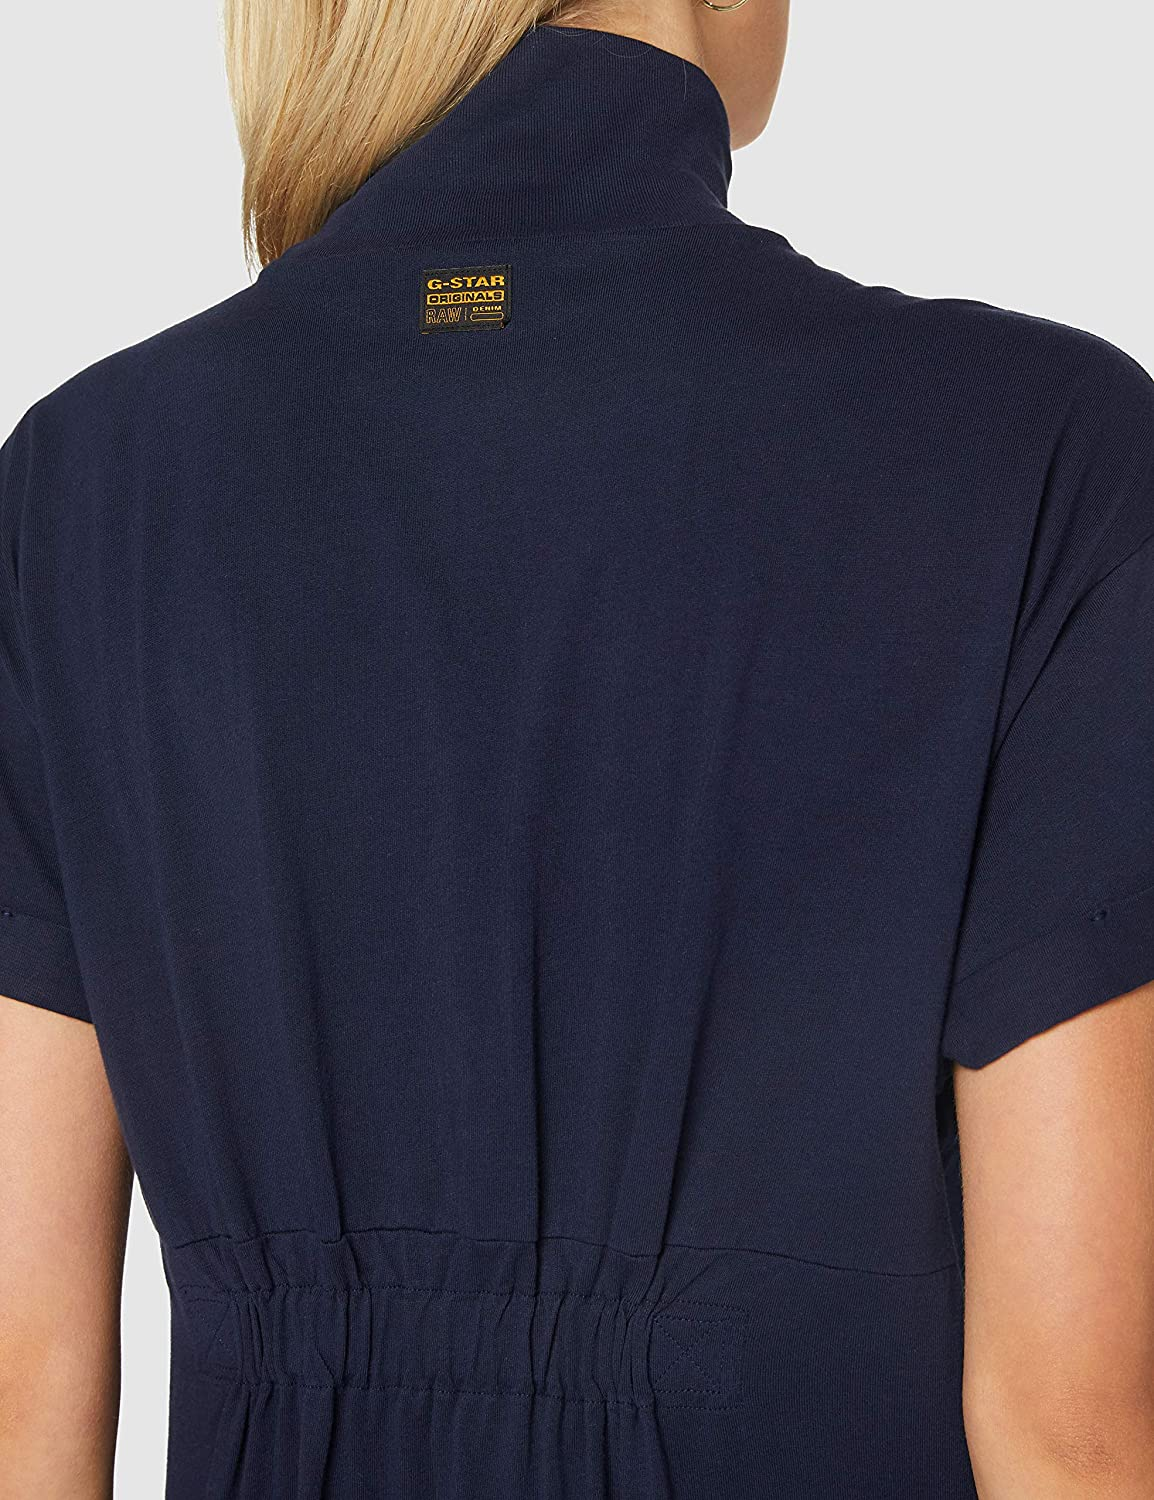 G-STAR RAW New Disem Turtle Loose Abito Casual Donna